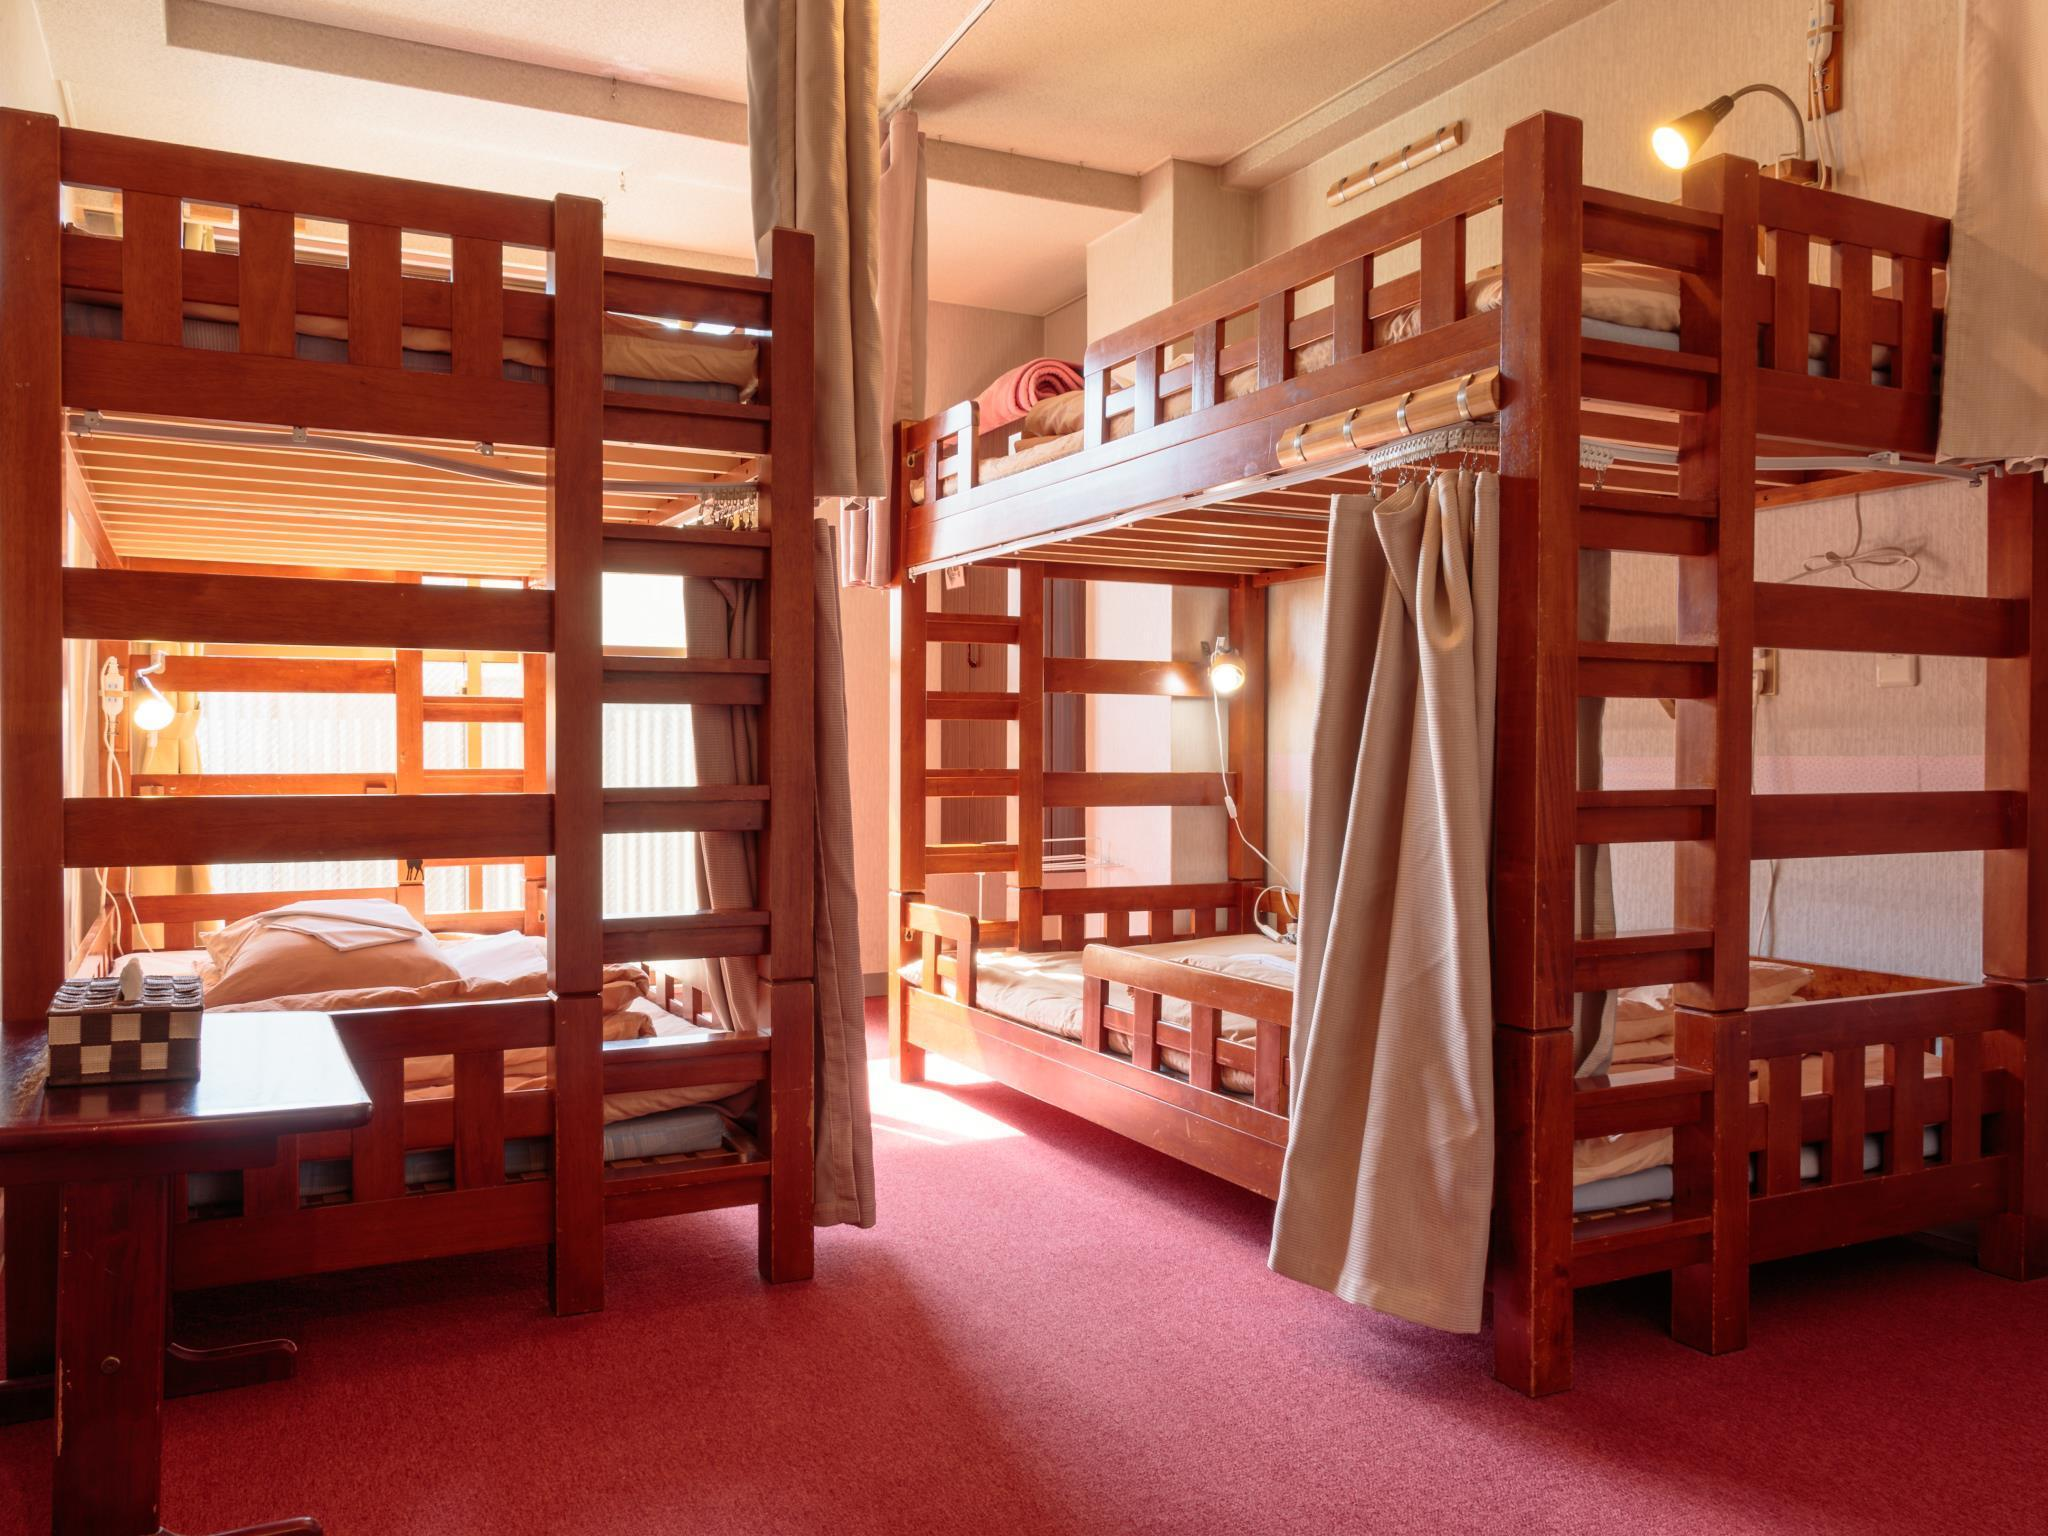 Vuode 4 vuoteen makuusalissa naisille (Bed in 4 - Bed Female Dormitory)